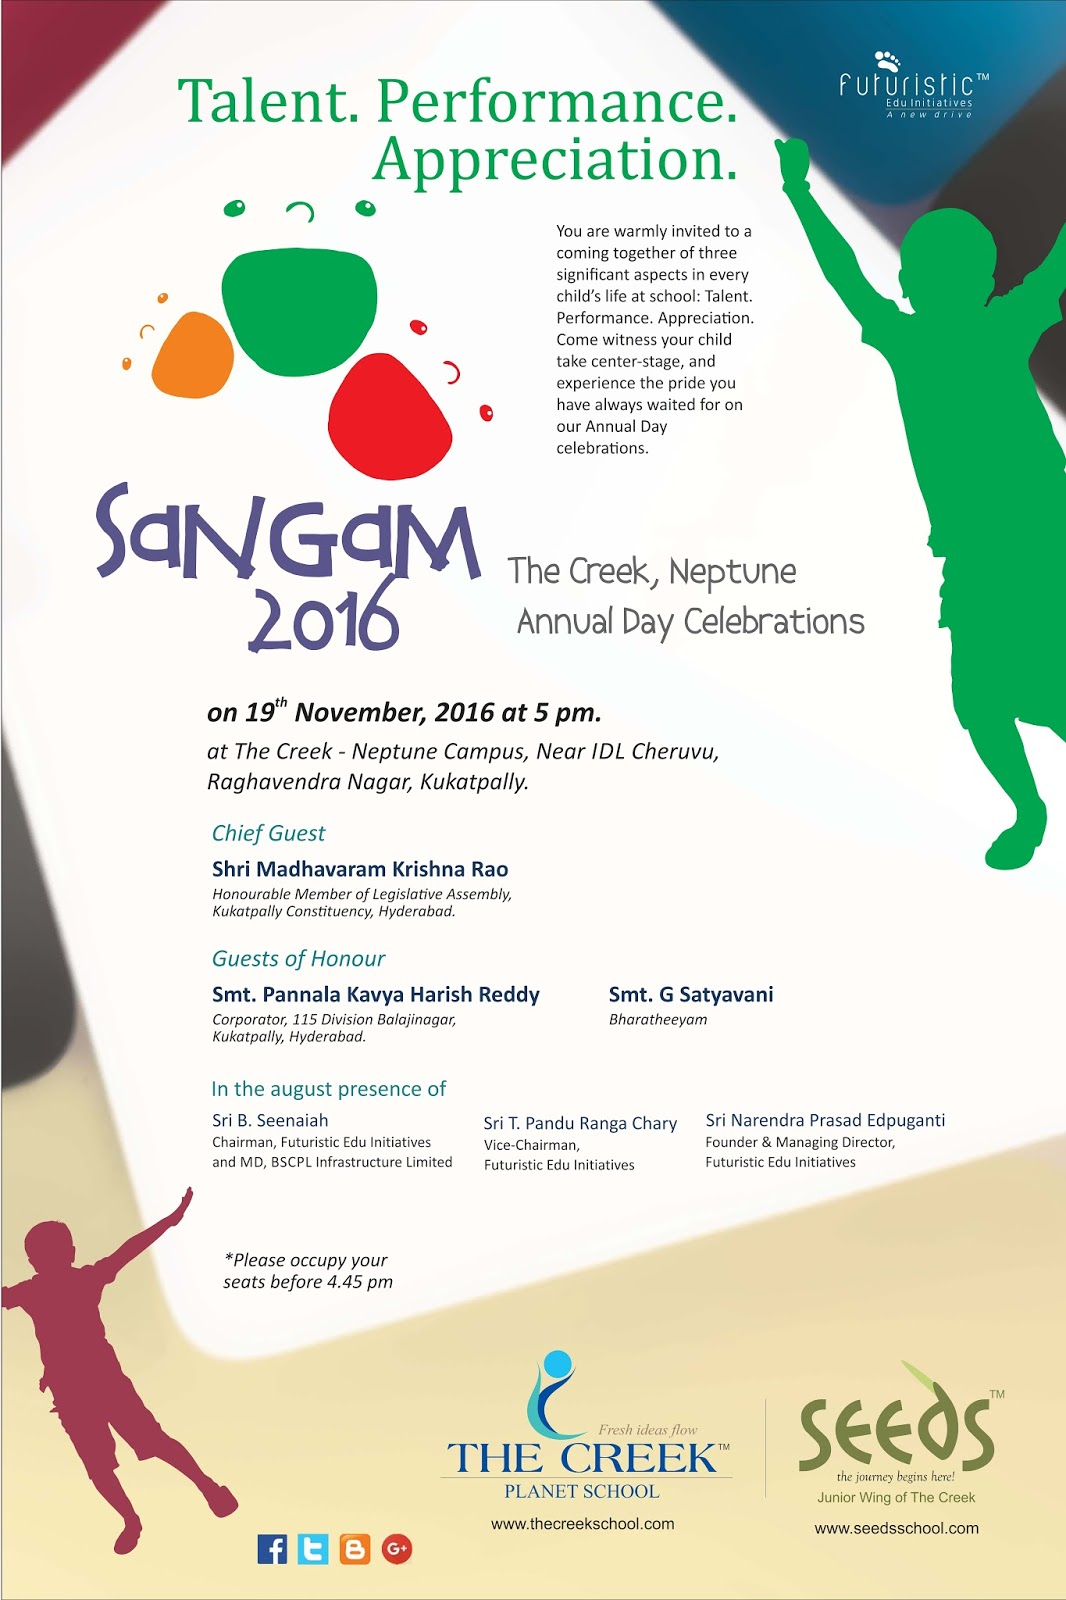 The creek planet school sangam annual day concert invitation sangam annual day concert invitation neptune campus stopboris Choice Image